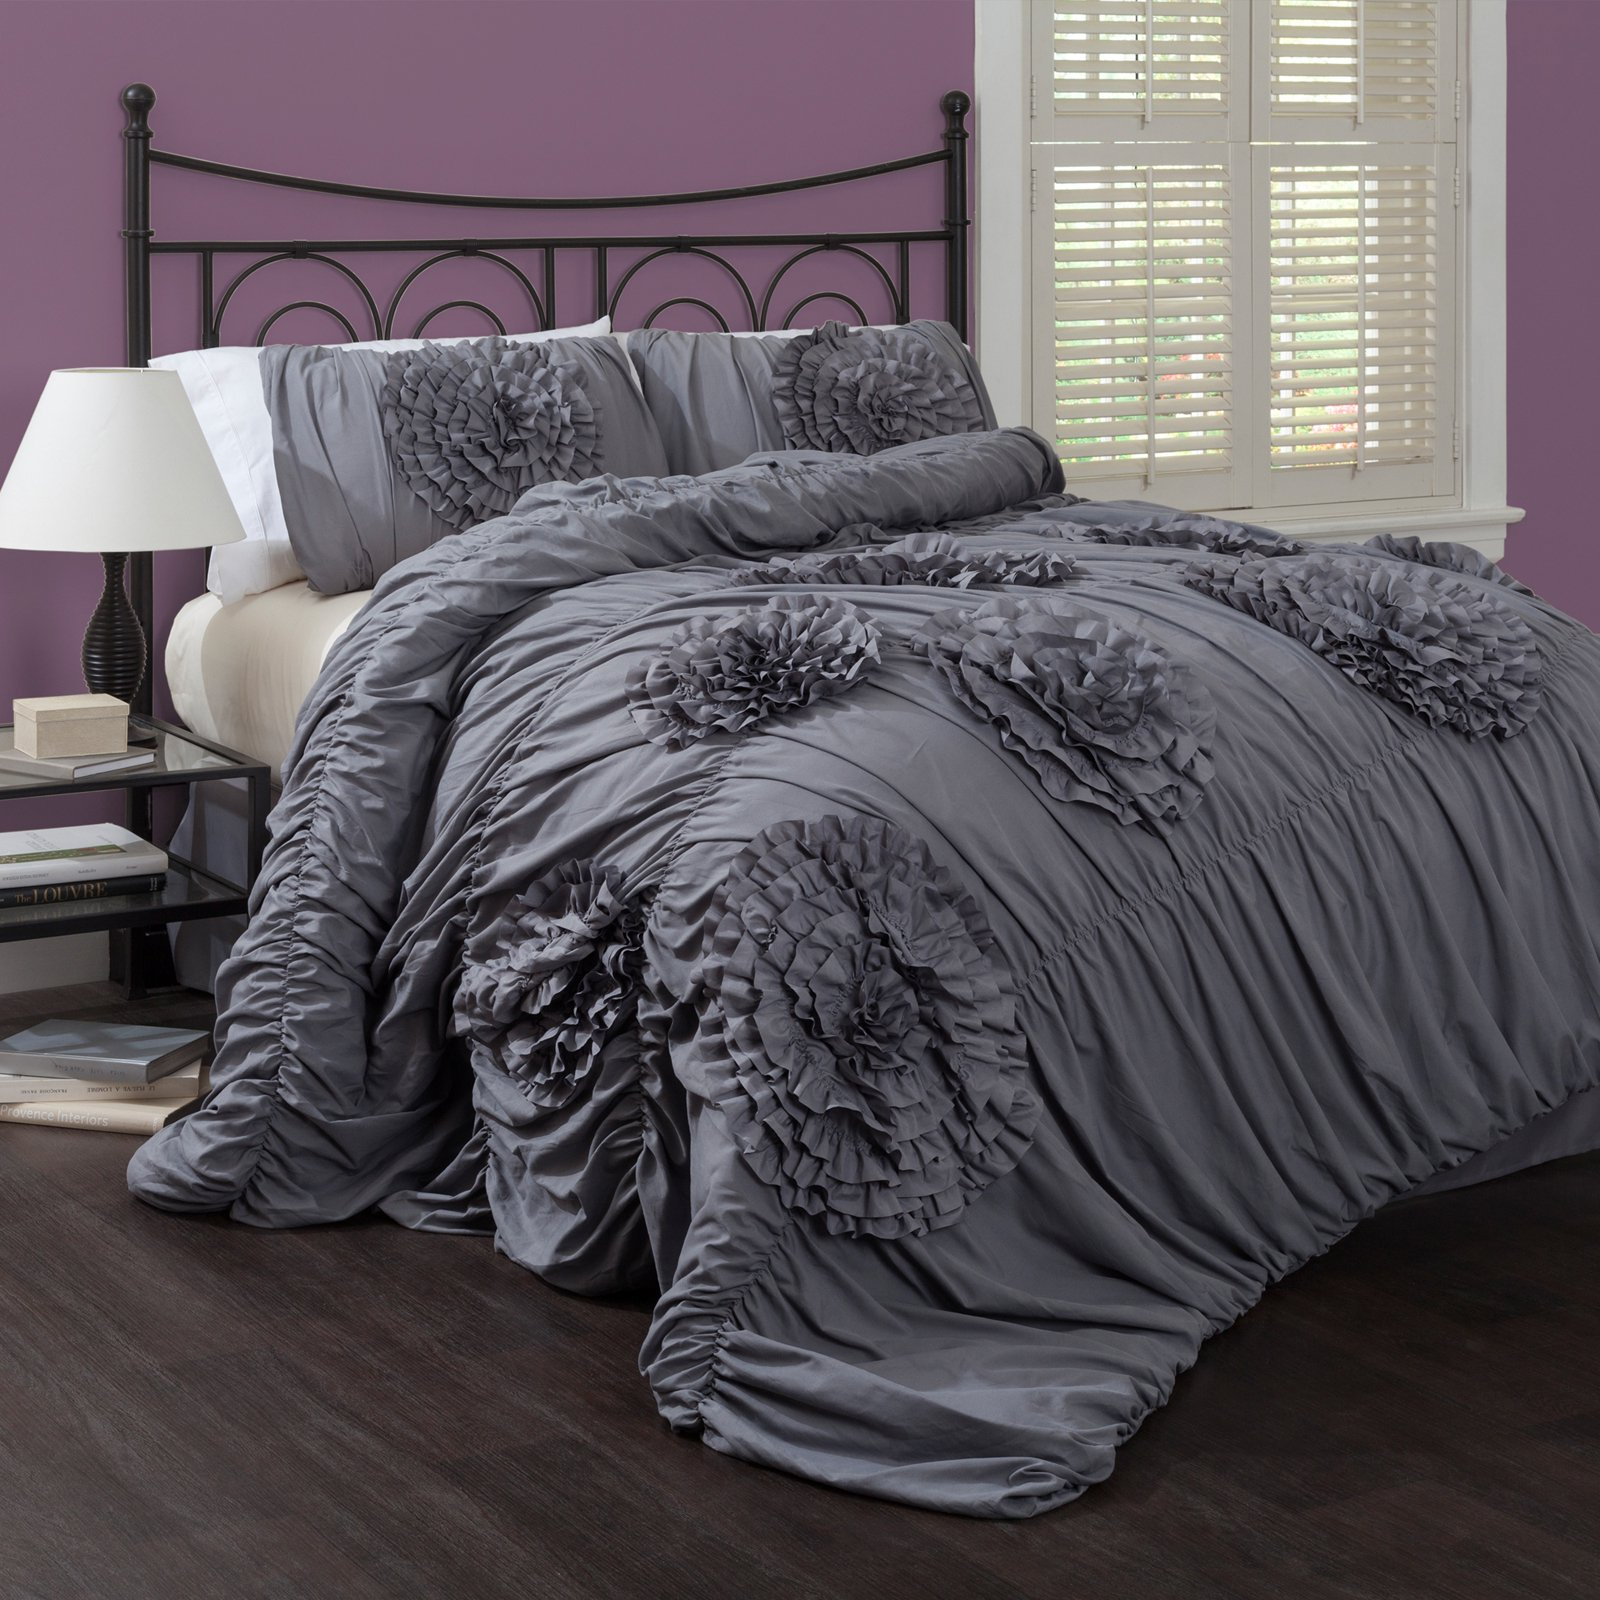 Serena 3 Piece Bedding Comforter Set